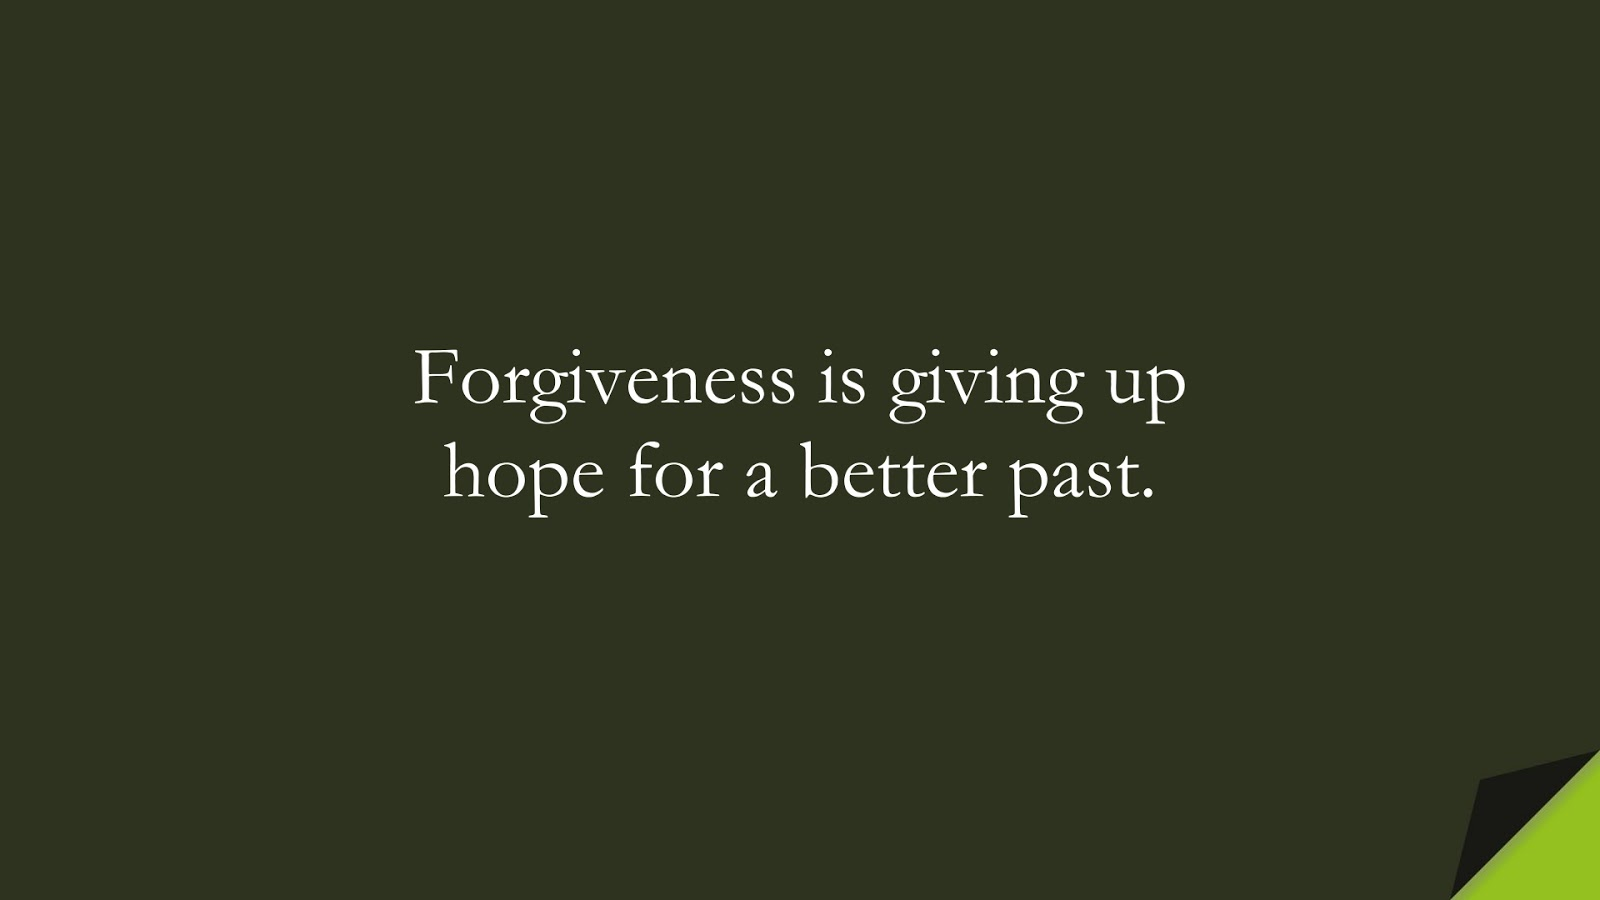 Forgiveness is giving up hope for a better past.FALSE